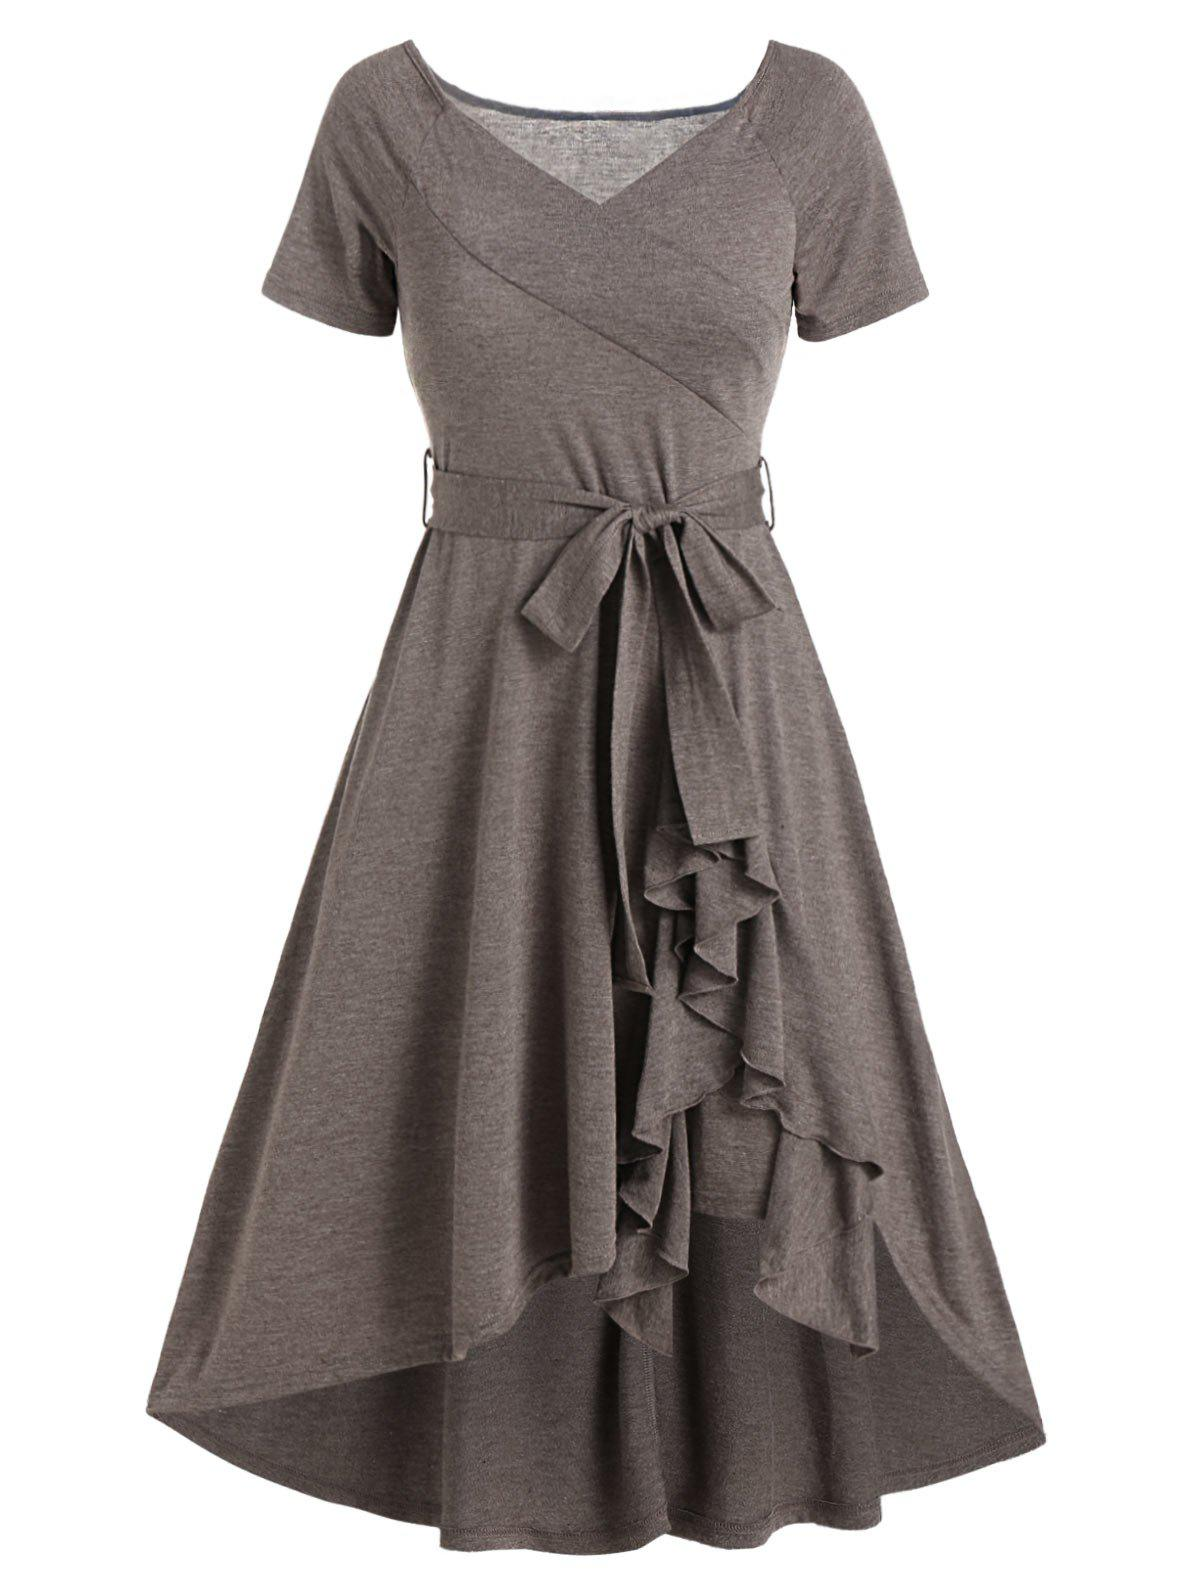 V Neck Belted Flounce Hem High Low Short Sleeve Dress - LIGHT COFFEE M